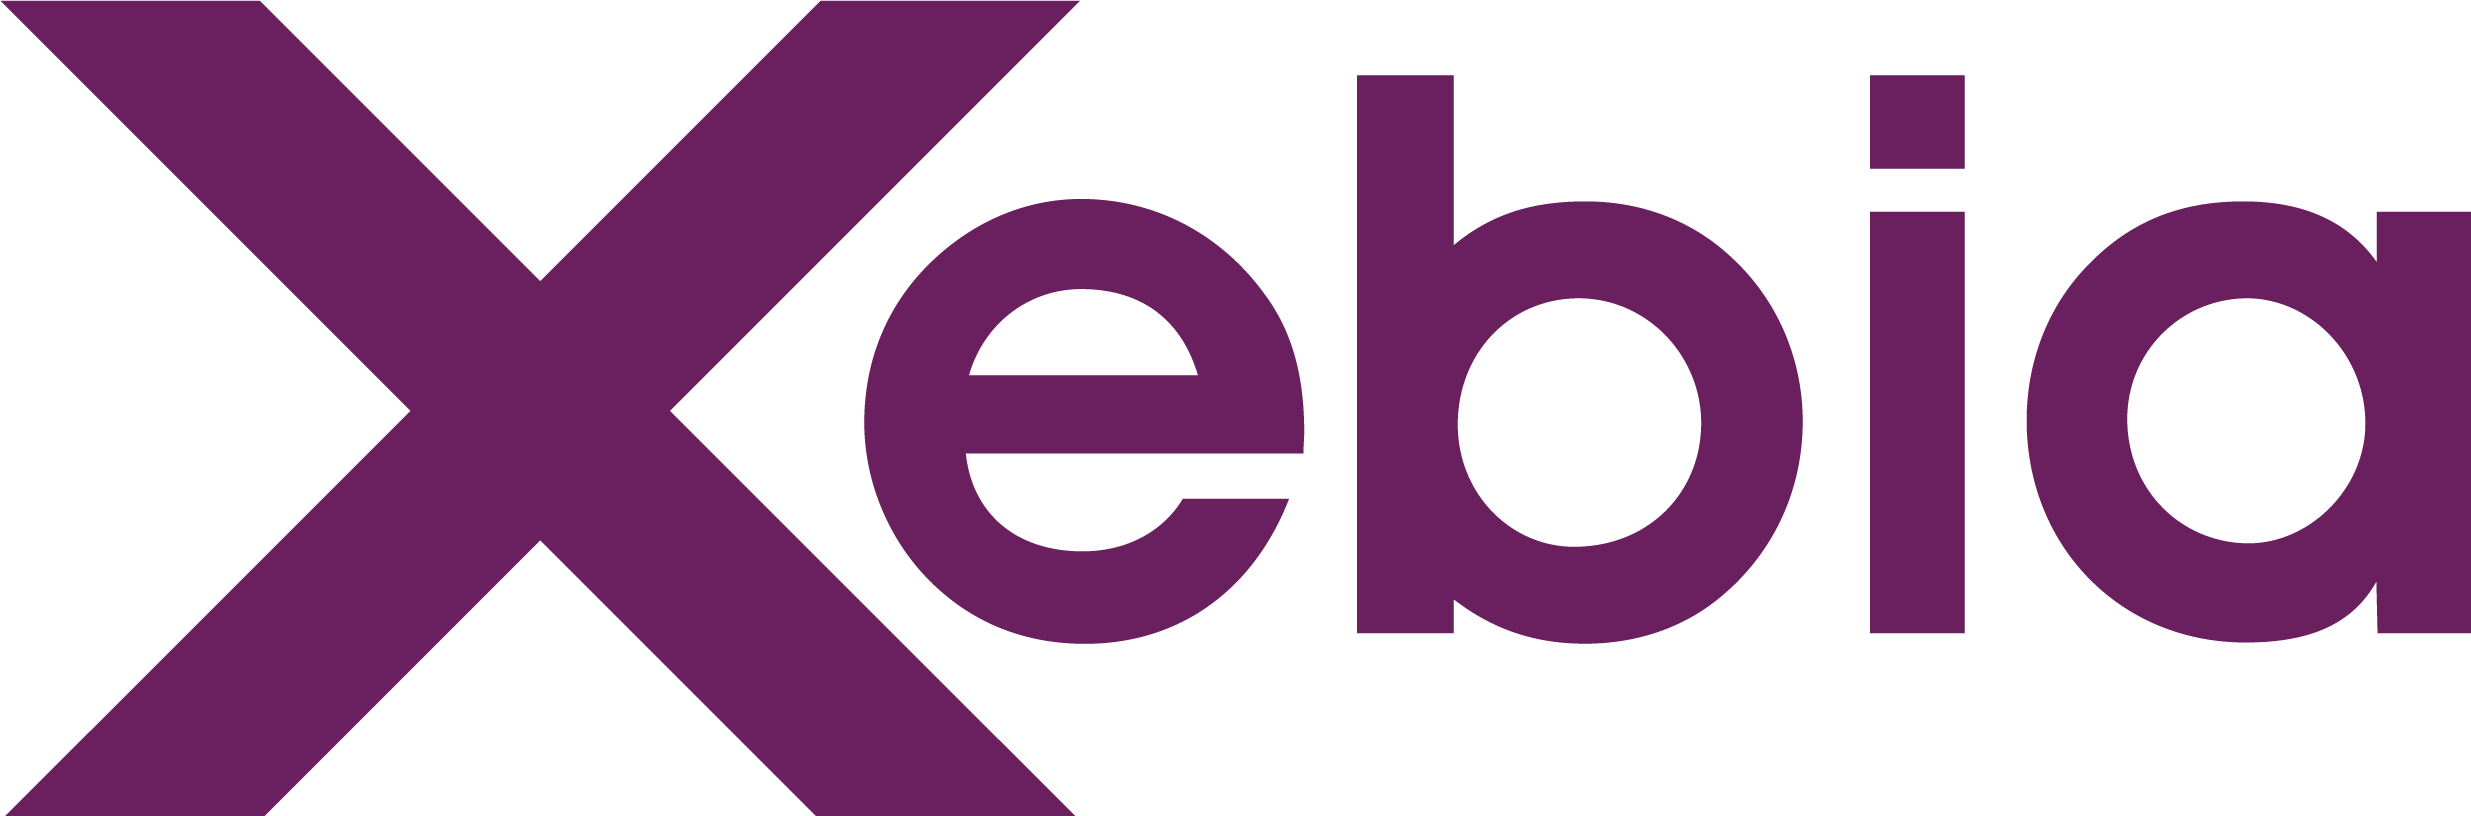 Image result for Xebia IT Architects